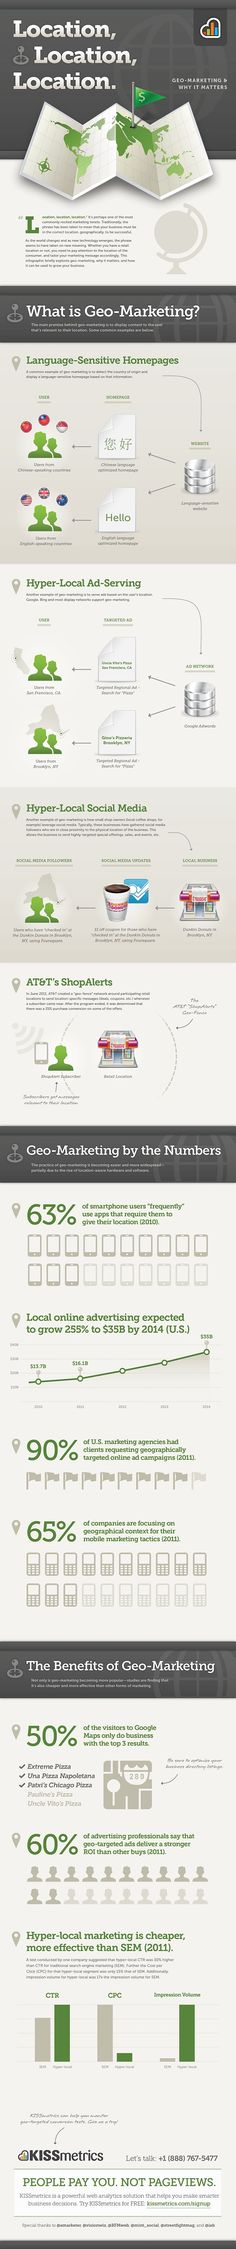 Geo-Marketing and Why It Matters #infographic